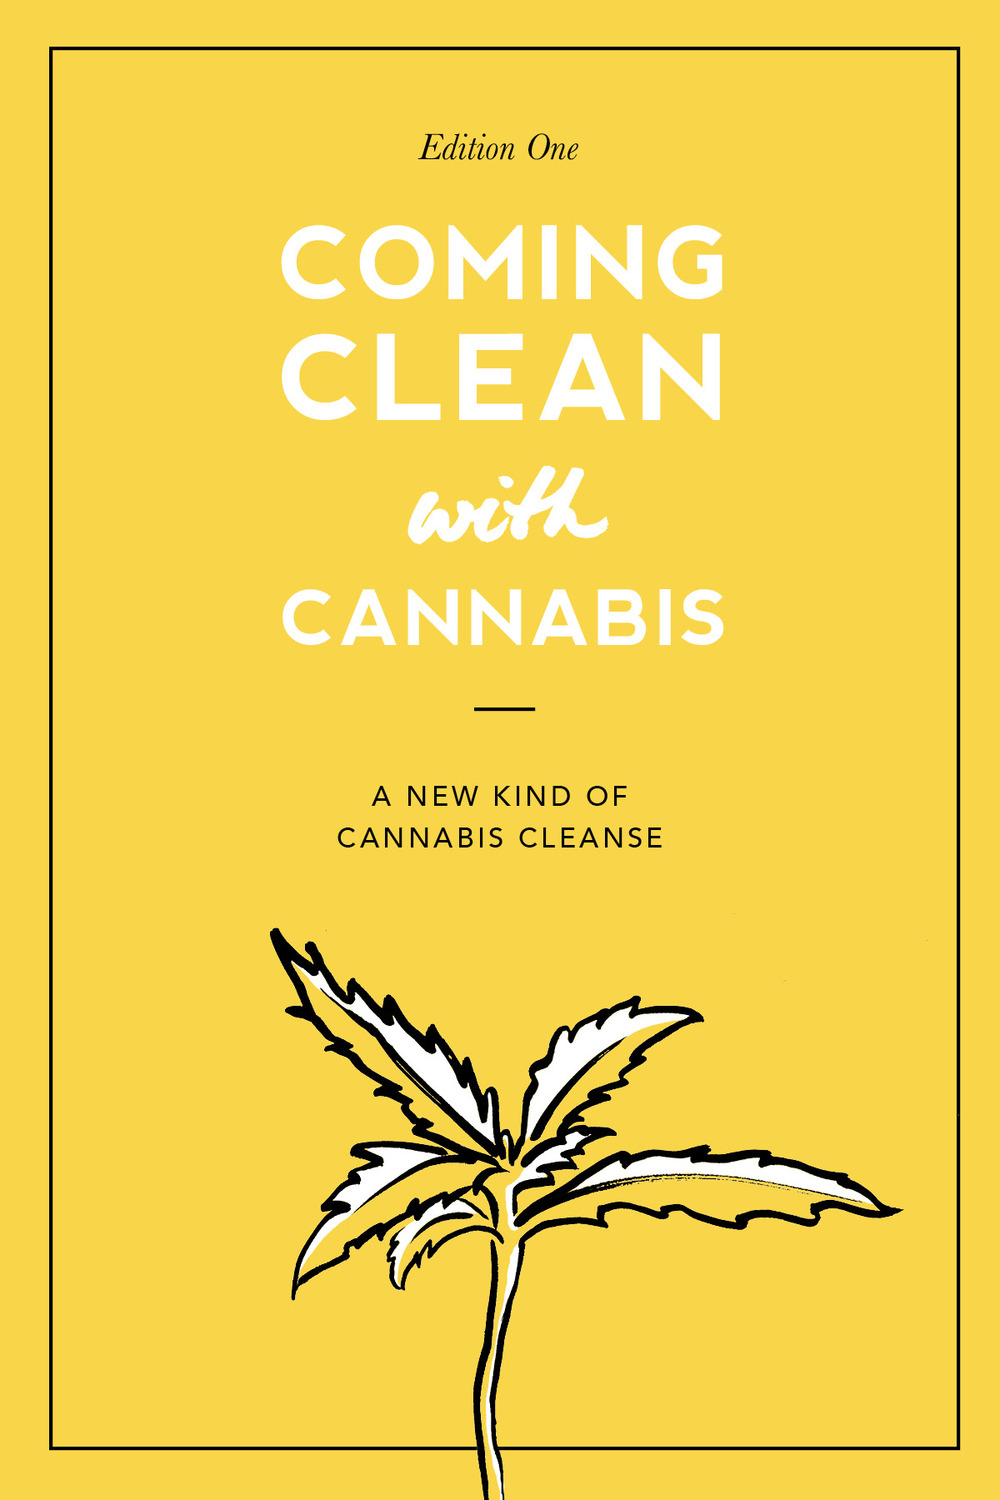 Cannabis Cleanse Cover